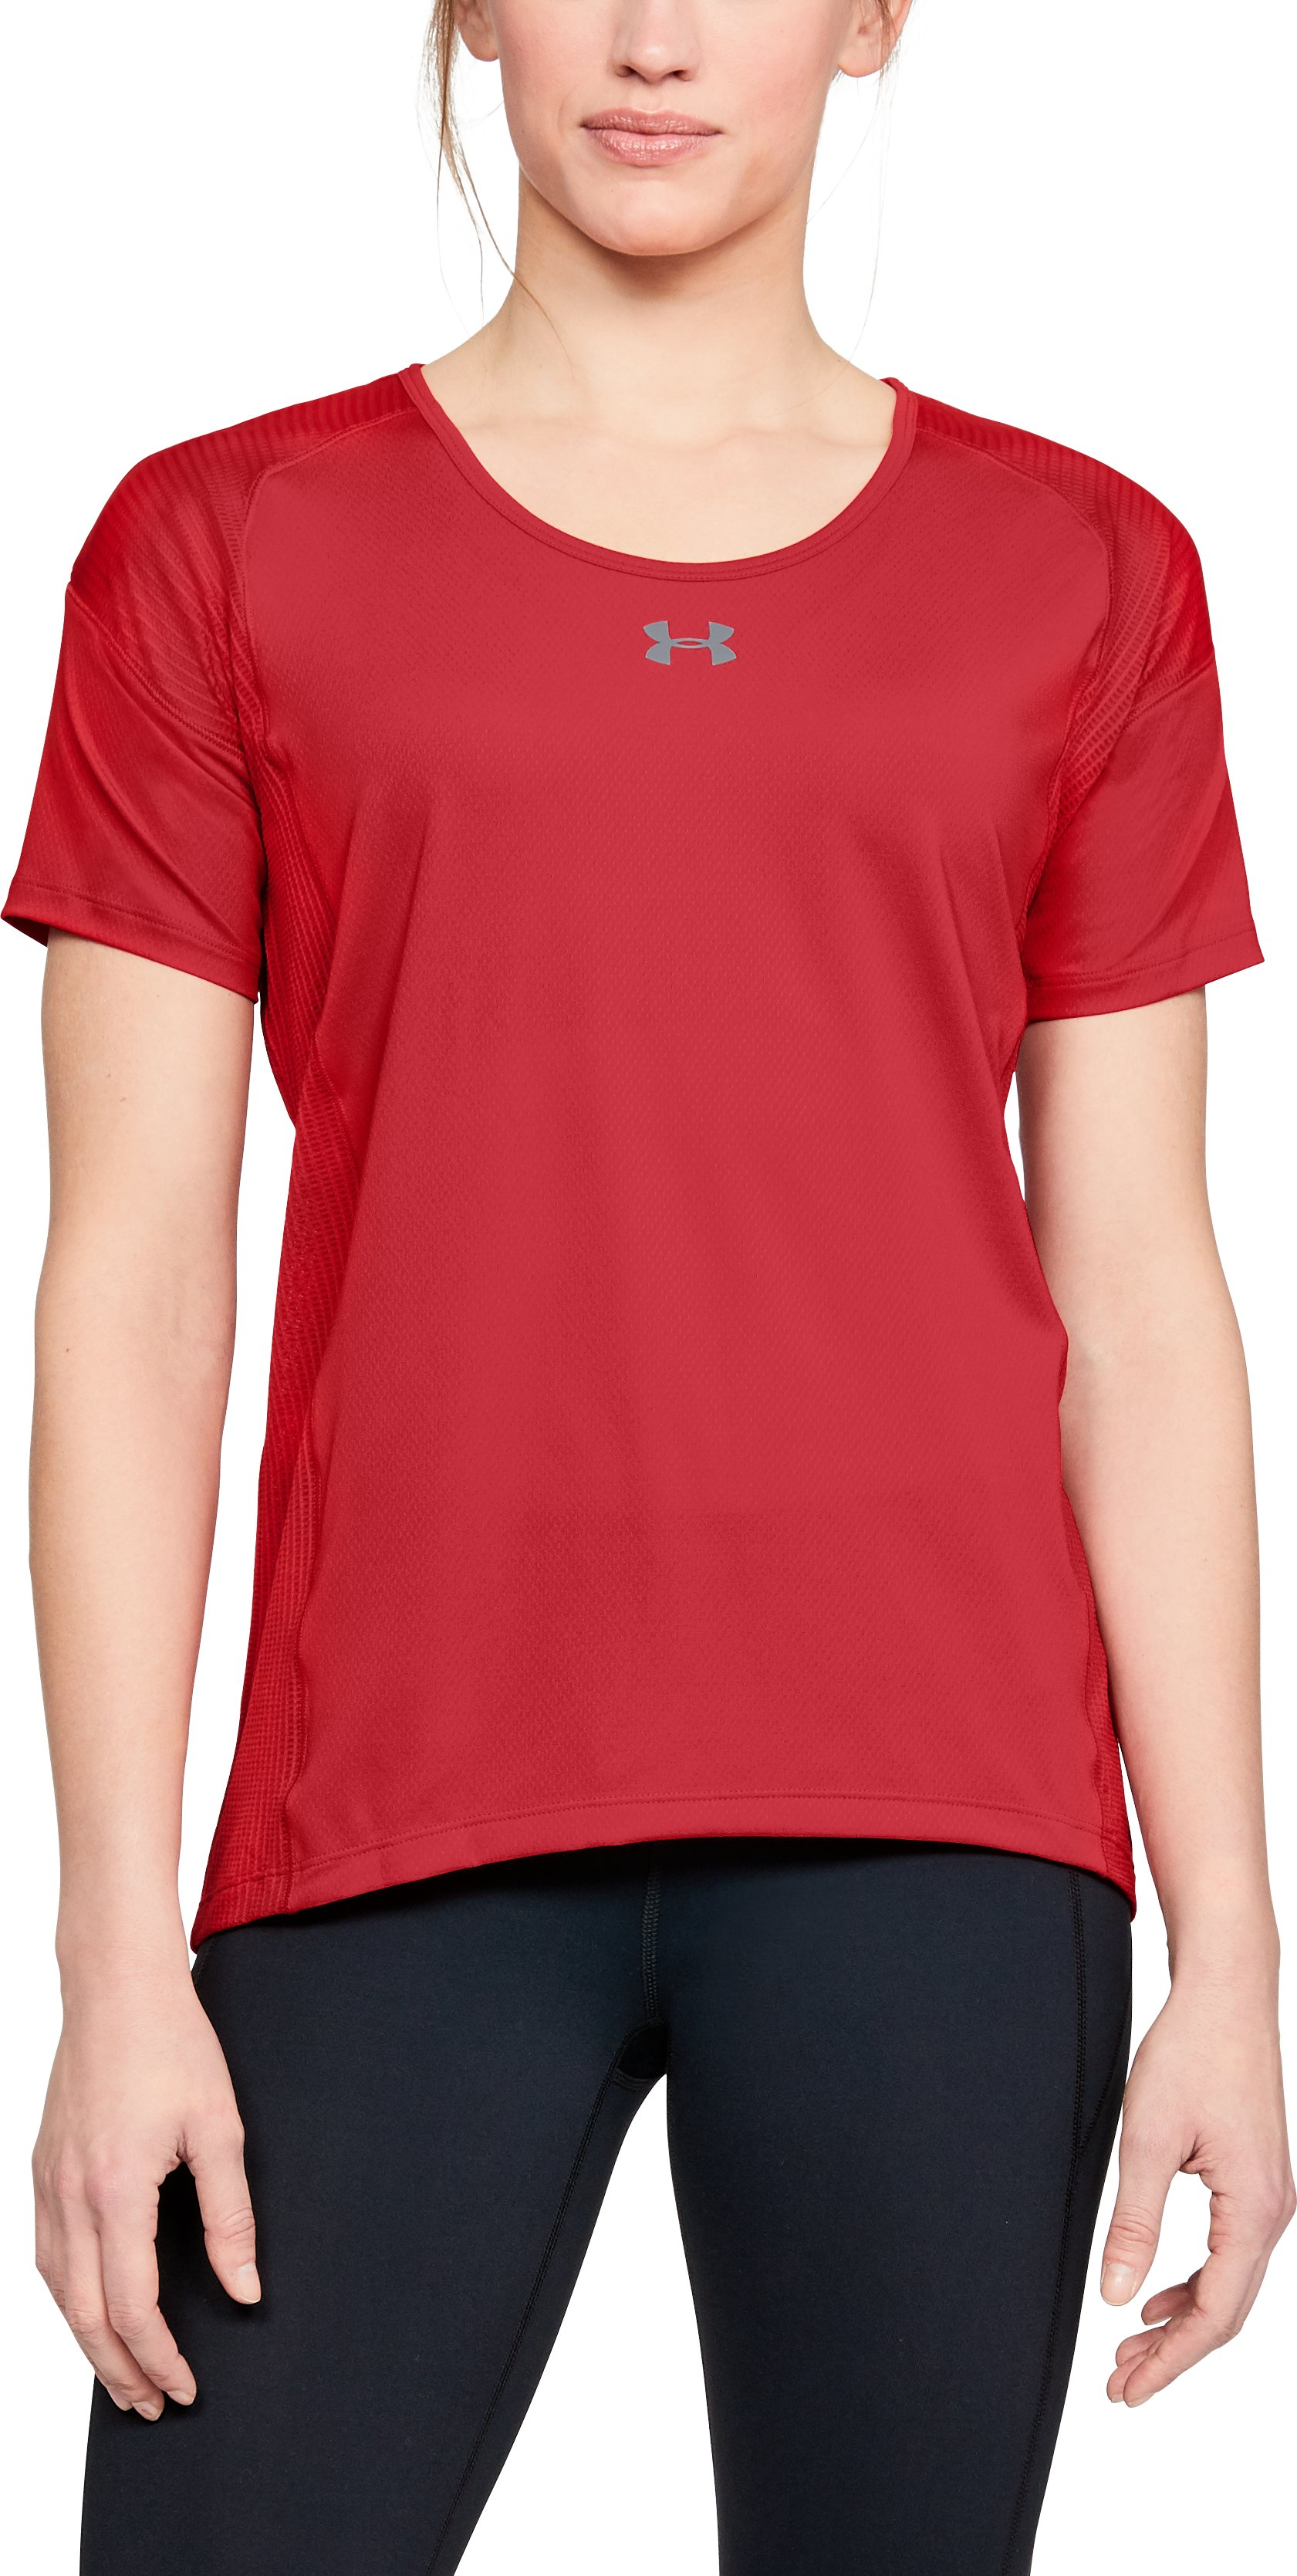 red t-shirt Women's UA Game Time T-Shirt Awesome Shirt!...Love this shirt!!...Very comfortable shirt and I plan to buy more colors.